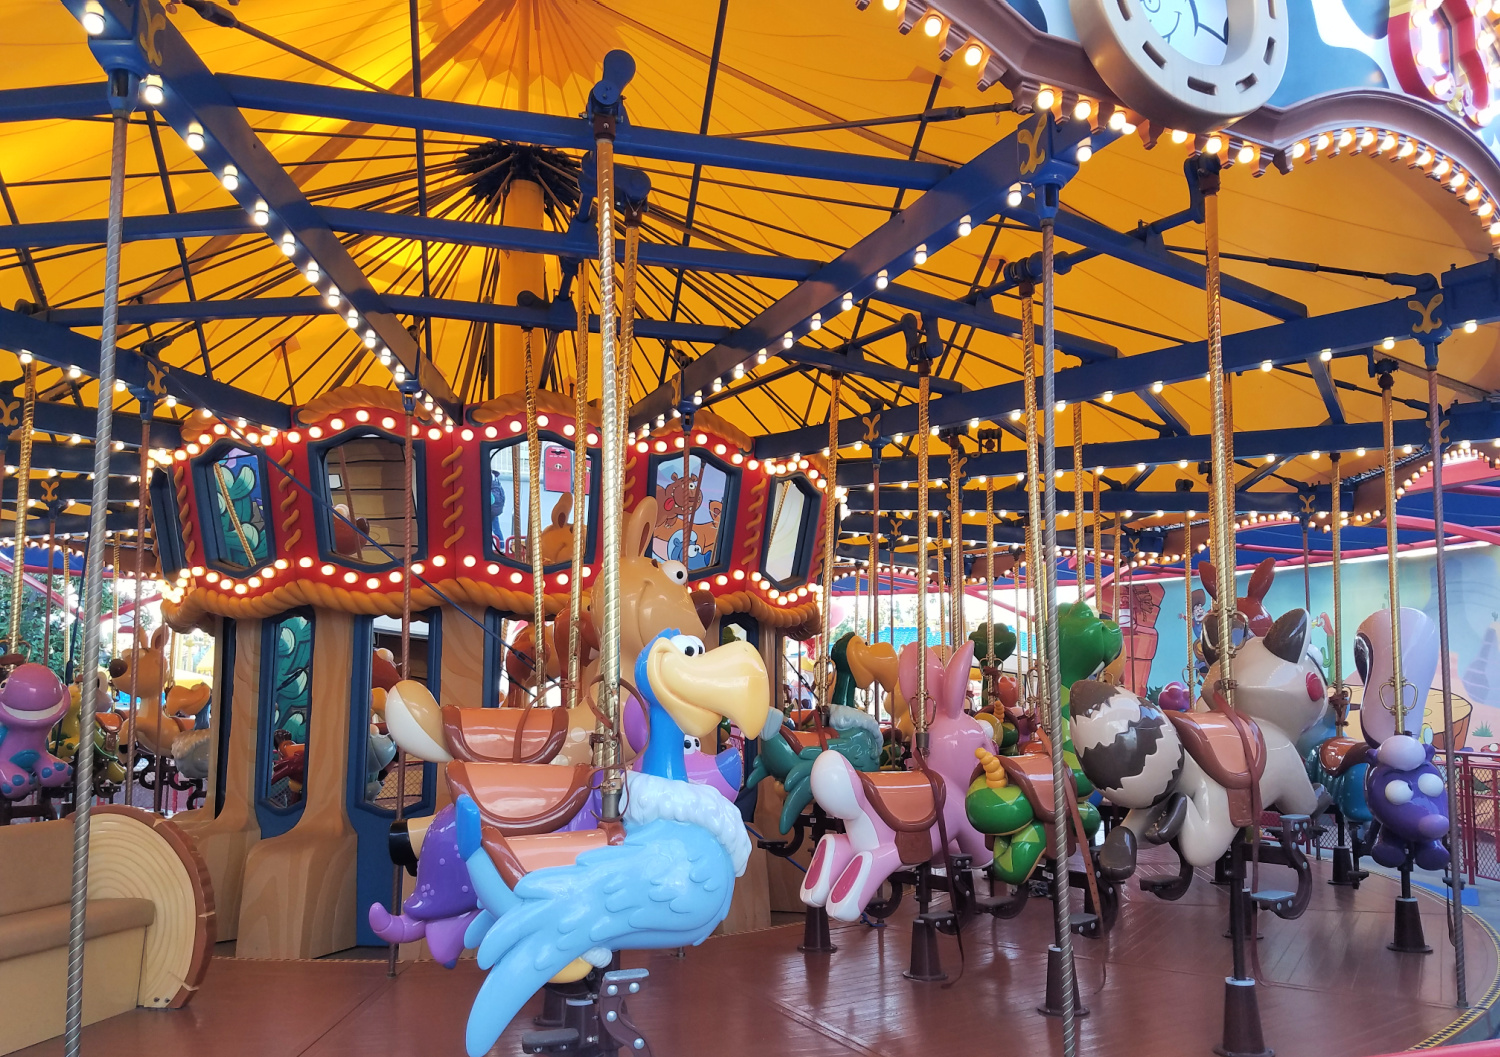 Jessie's Critter Carousel at Disney California Adventure theme park